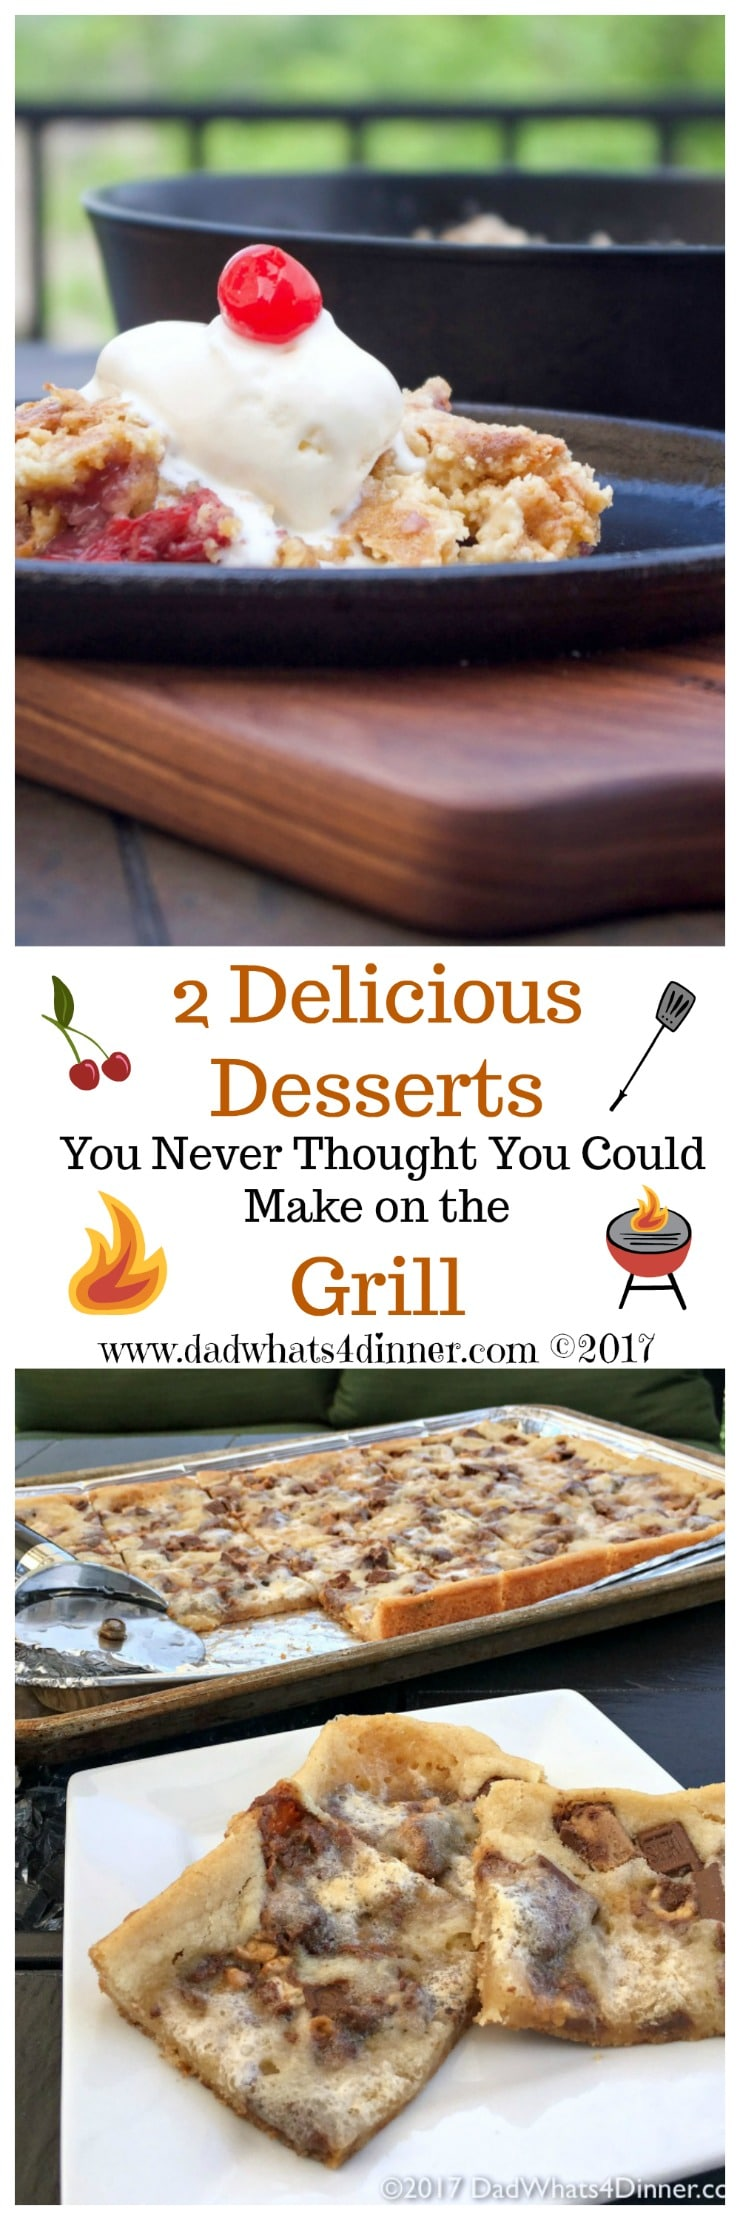 Your family will love these two Unexpected Desserts Made on the Grillmade with simple everyday ingredients. Take your grilling to a new level! www.dadwhats4dinner.com #ad #grilling #desserts #familydollar